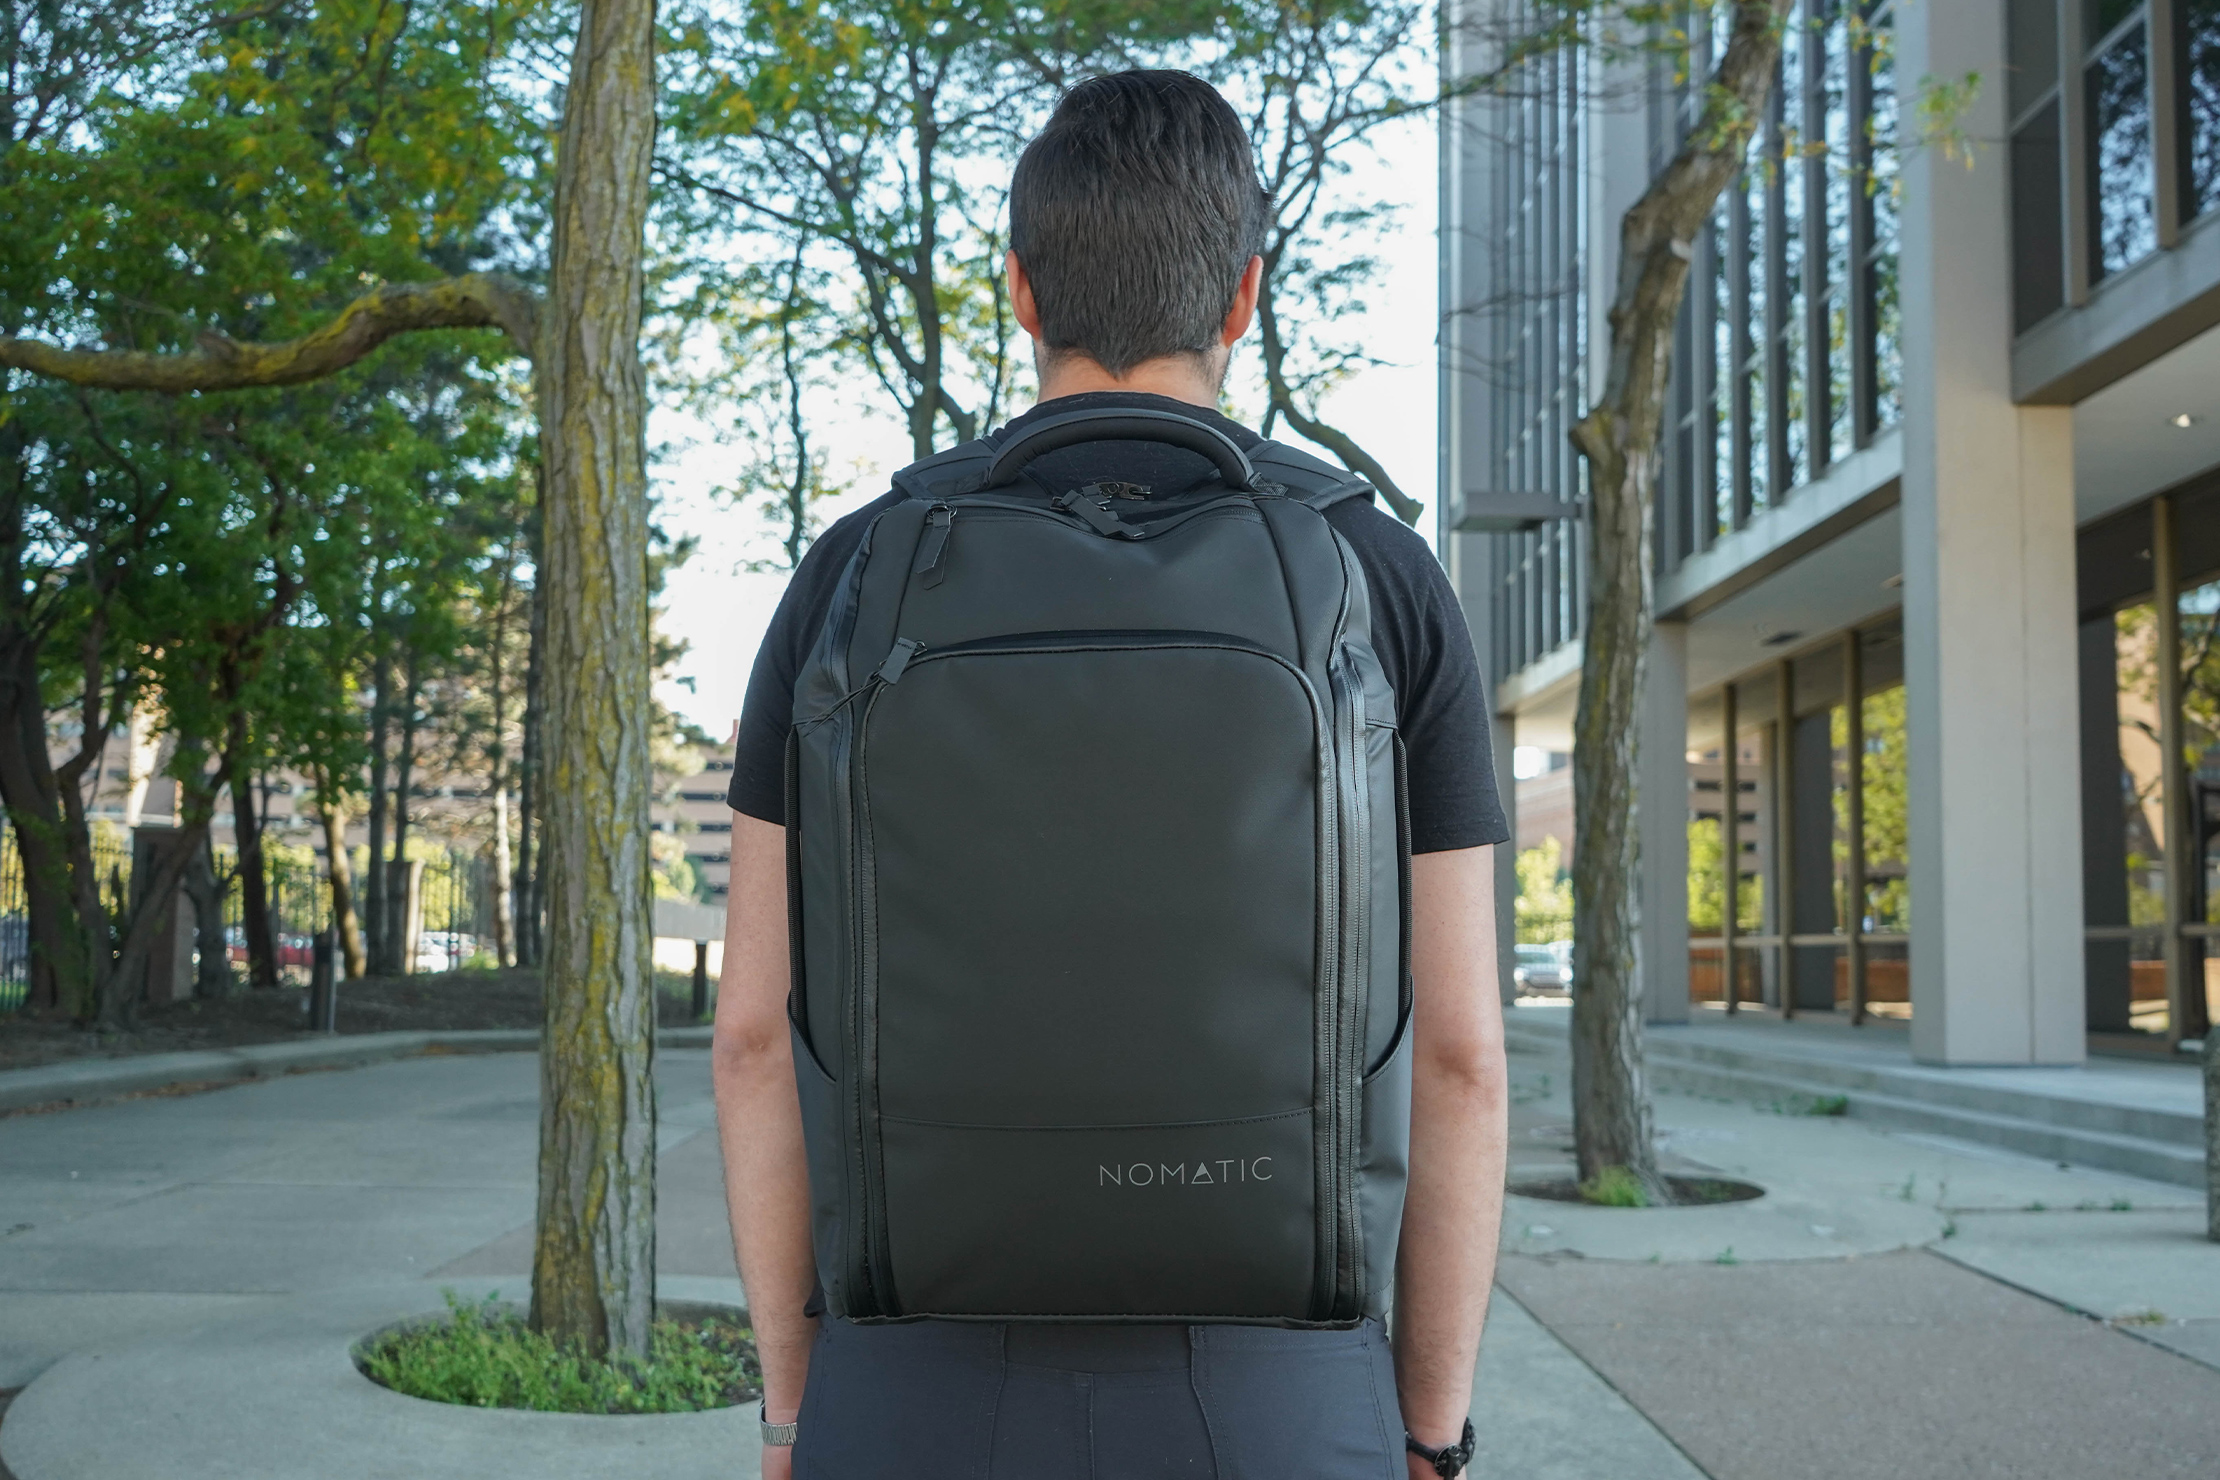 NOMATIC Travel Pack In Use